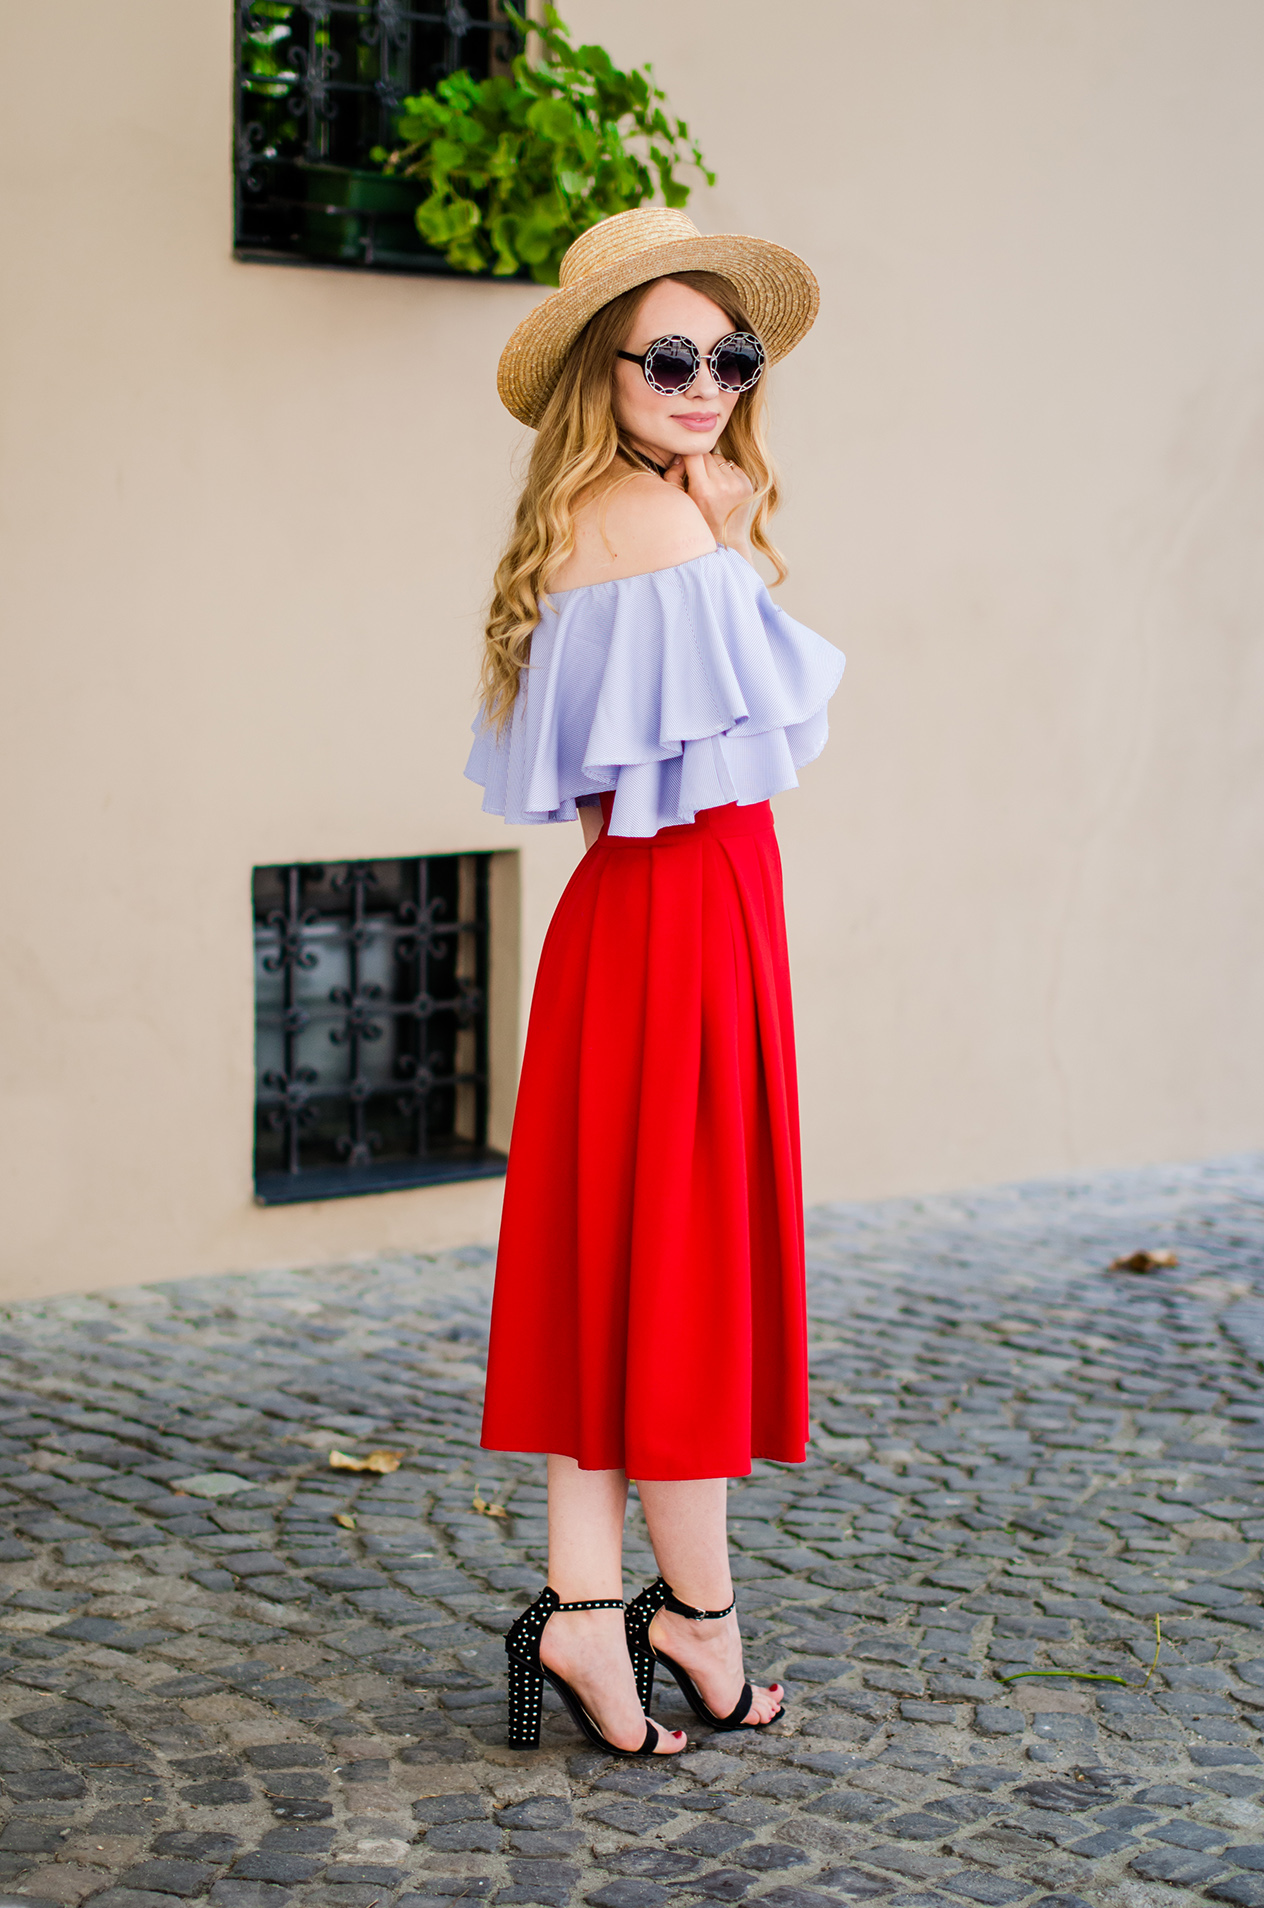 off-shoulder-blouse-red-midi-skirt-straw-hat (3)